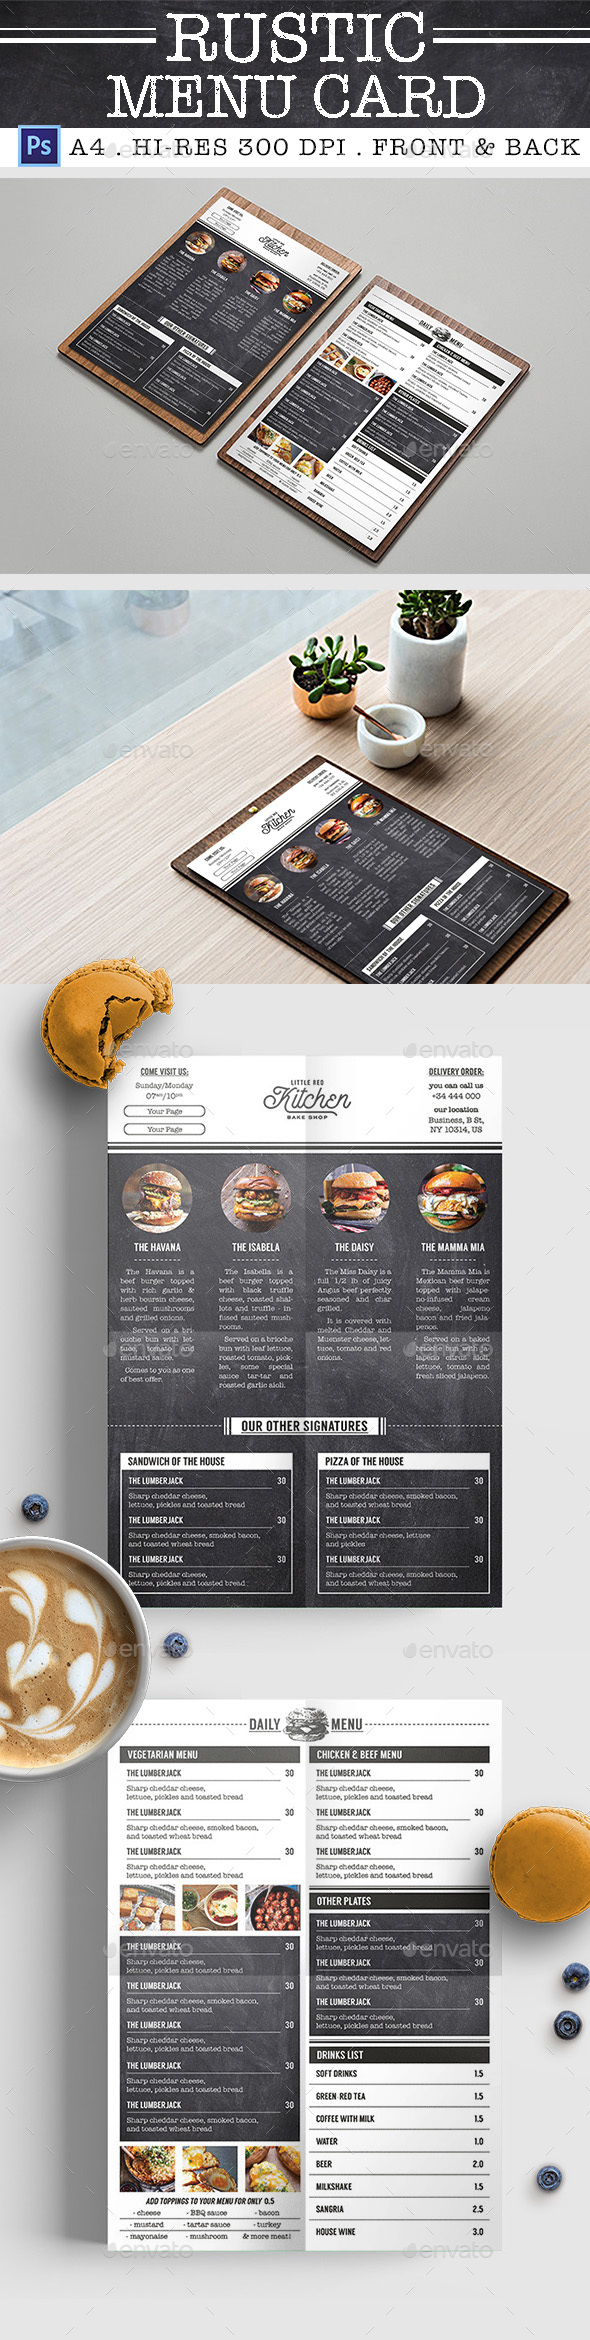 Rustic Burger Menu Card - Food Menus Print Templates